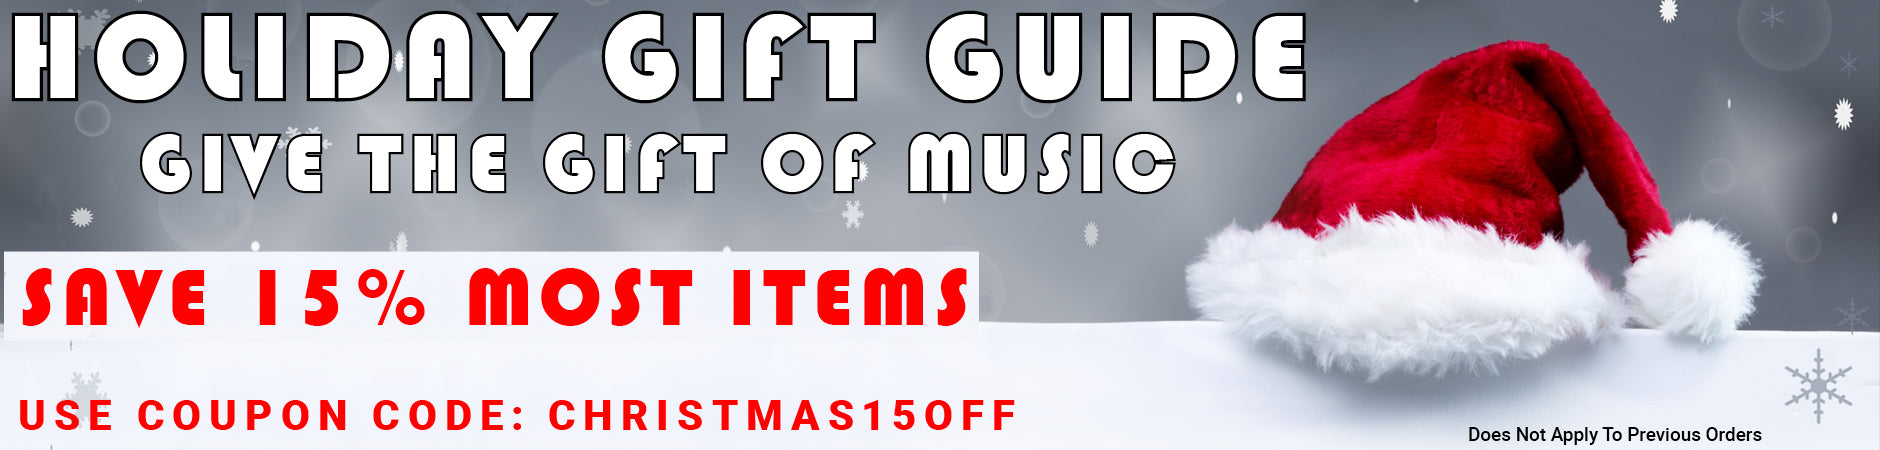 holiday gift guide- bass gifts under $700